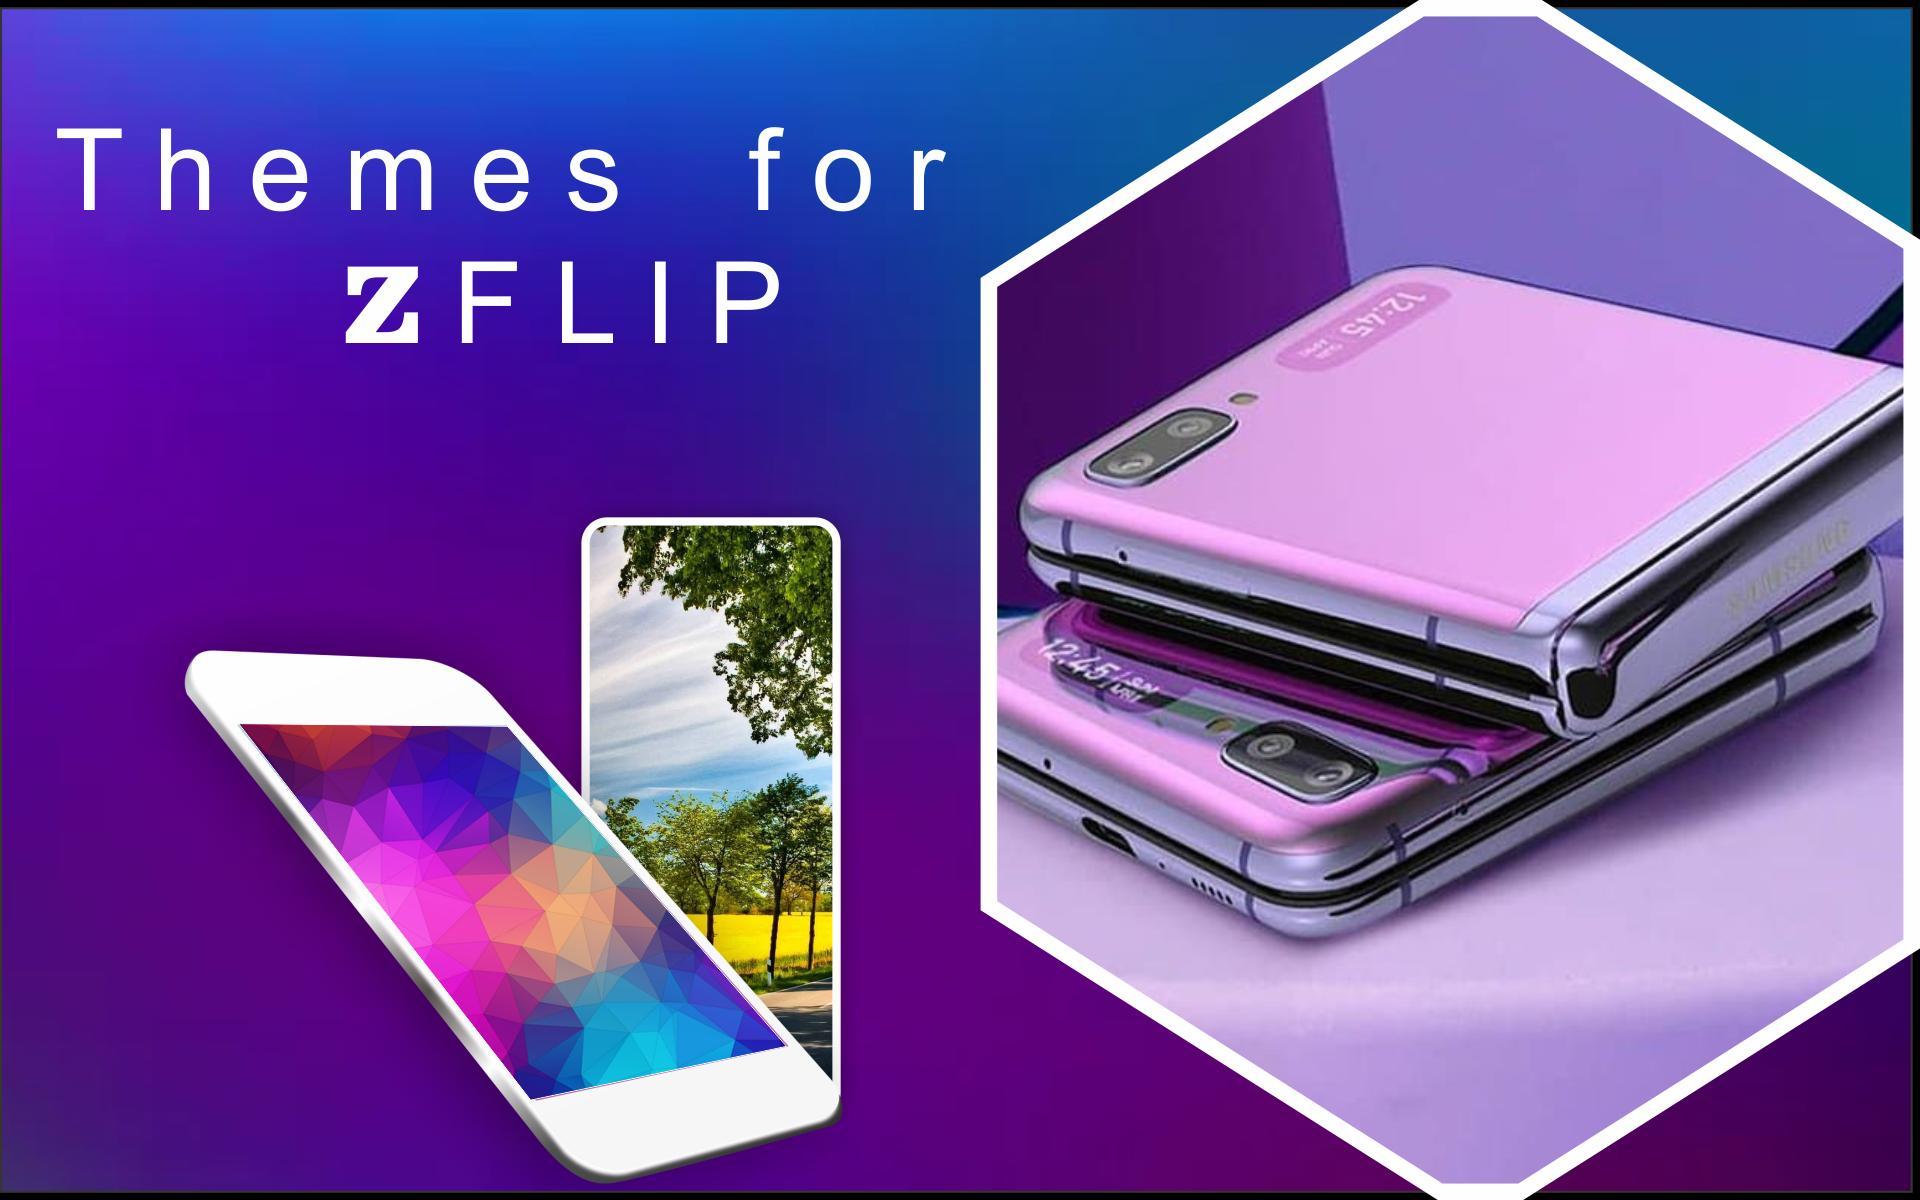 Themes For Samsung Z Flip Z Flip Wallpaper Hd For Android Apk Download